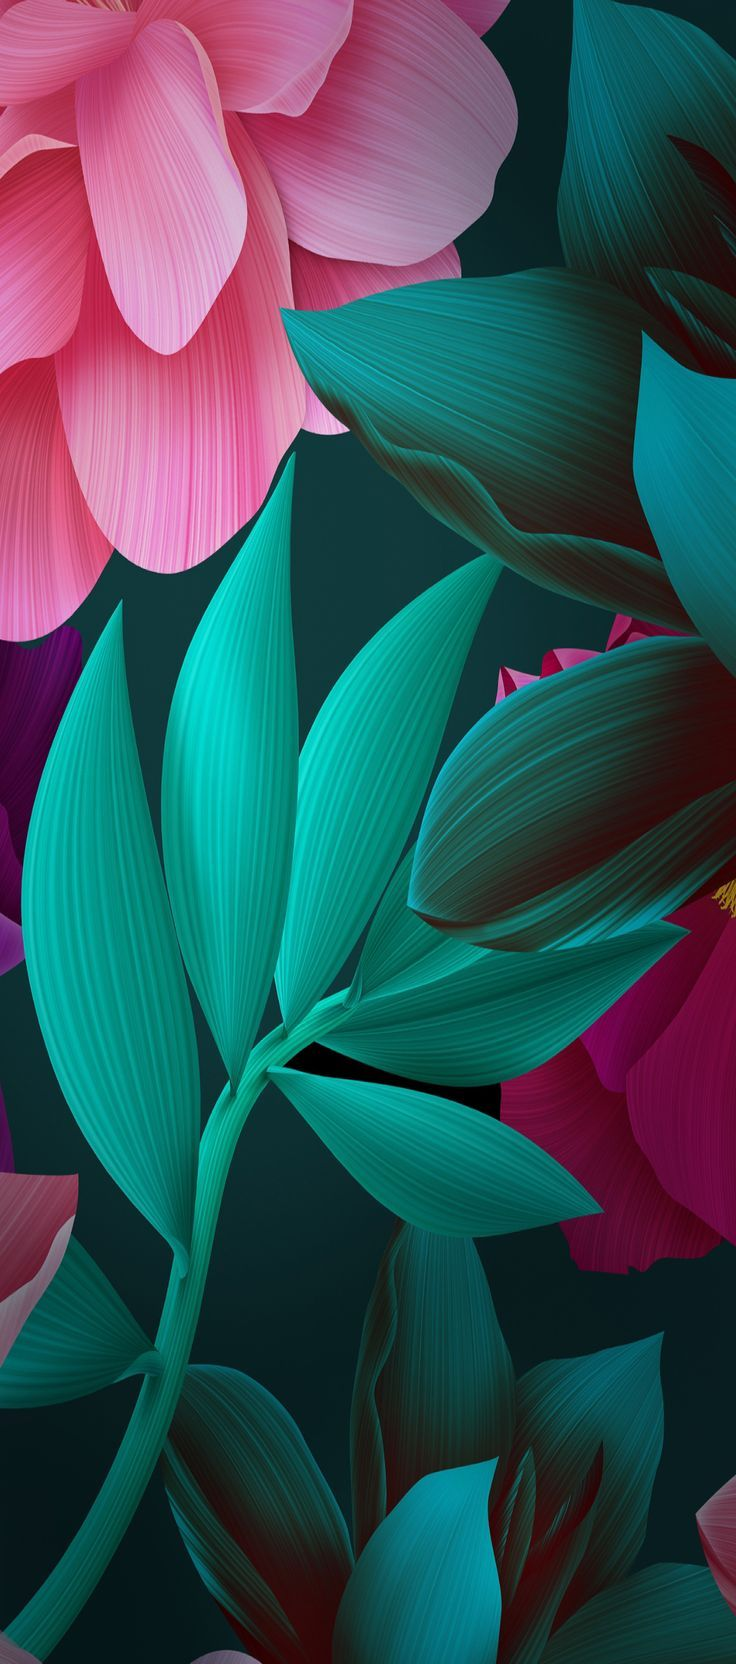 Ios 11 Iphone X Green Black Pink Floral Plant Simple Abstract Apple Wallpaper Iphone 8 Clean Beauty Colour Ios Min Yabloko Oboi Chernye Oboi Oboi